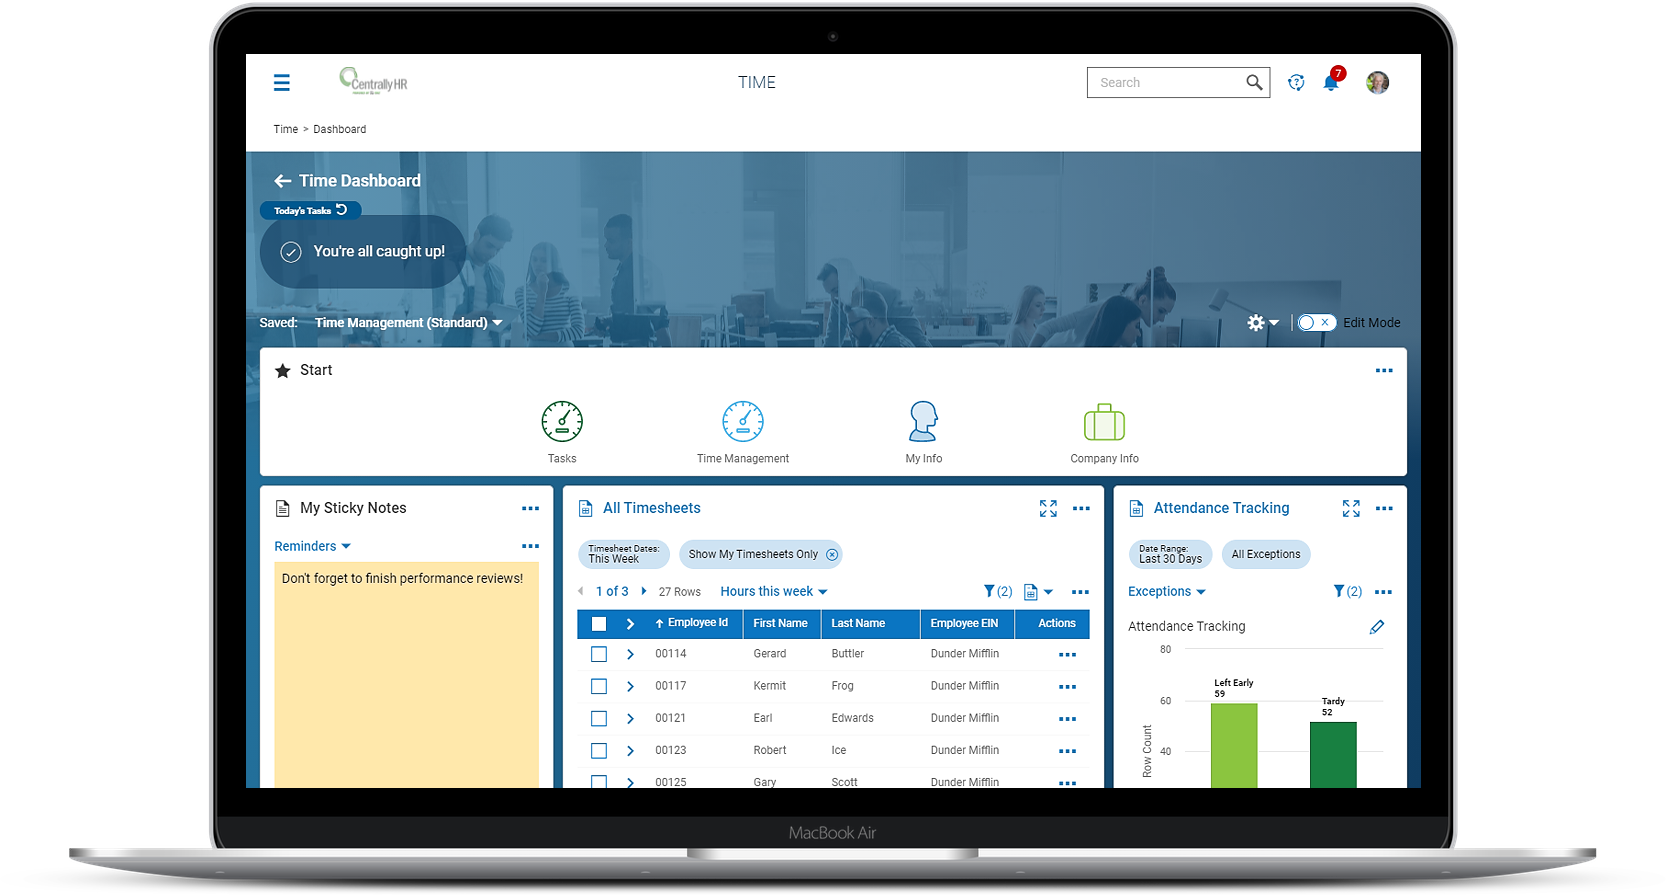 Manager's Time Dashboard